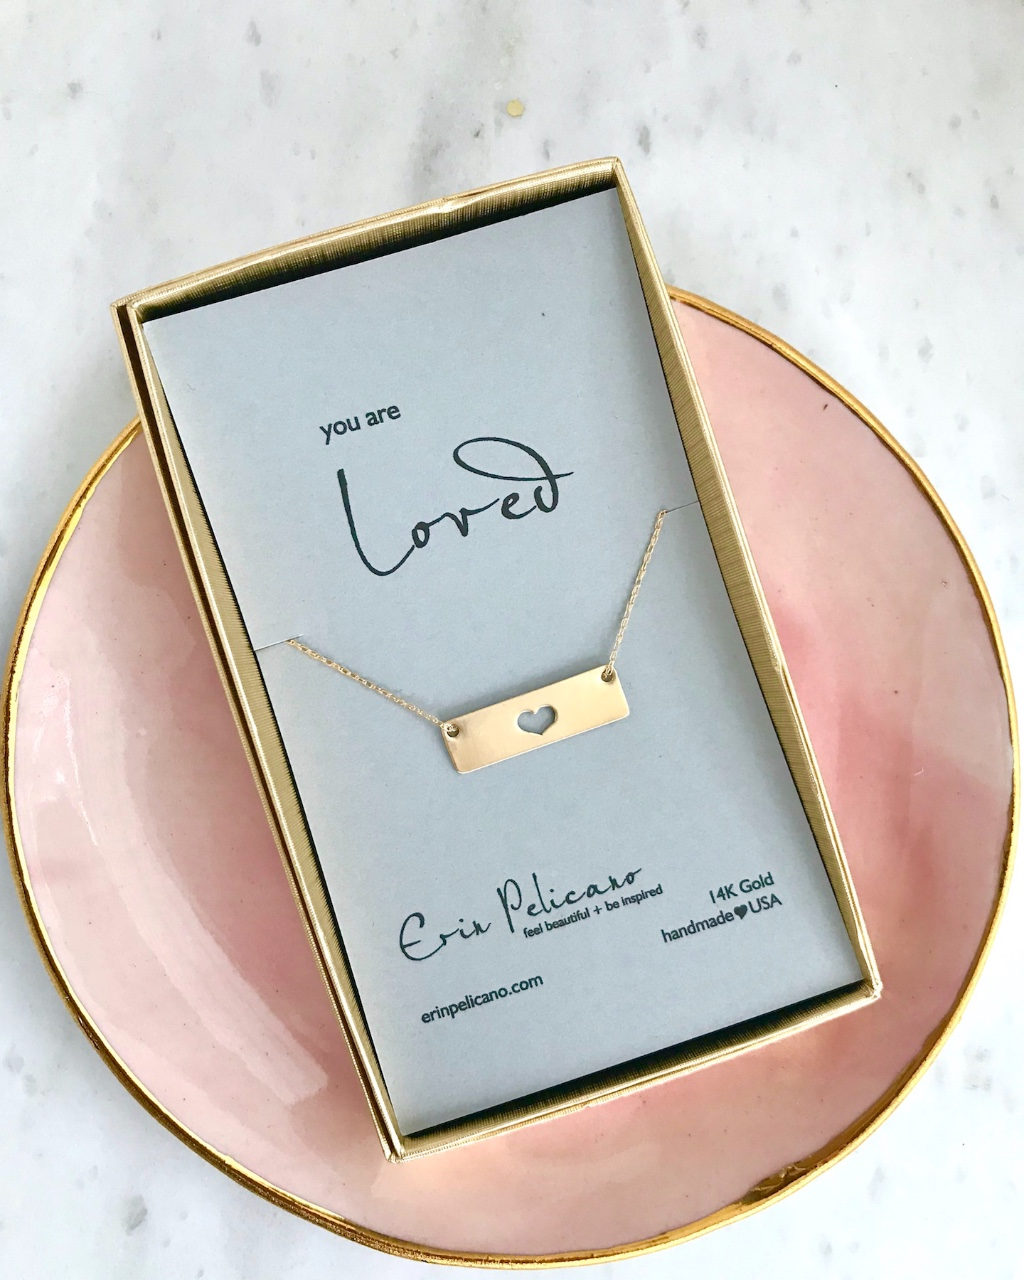 Gold Bar Heart Necklace, Handcrafted 14k gold Bar Jewelry for LOVE